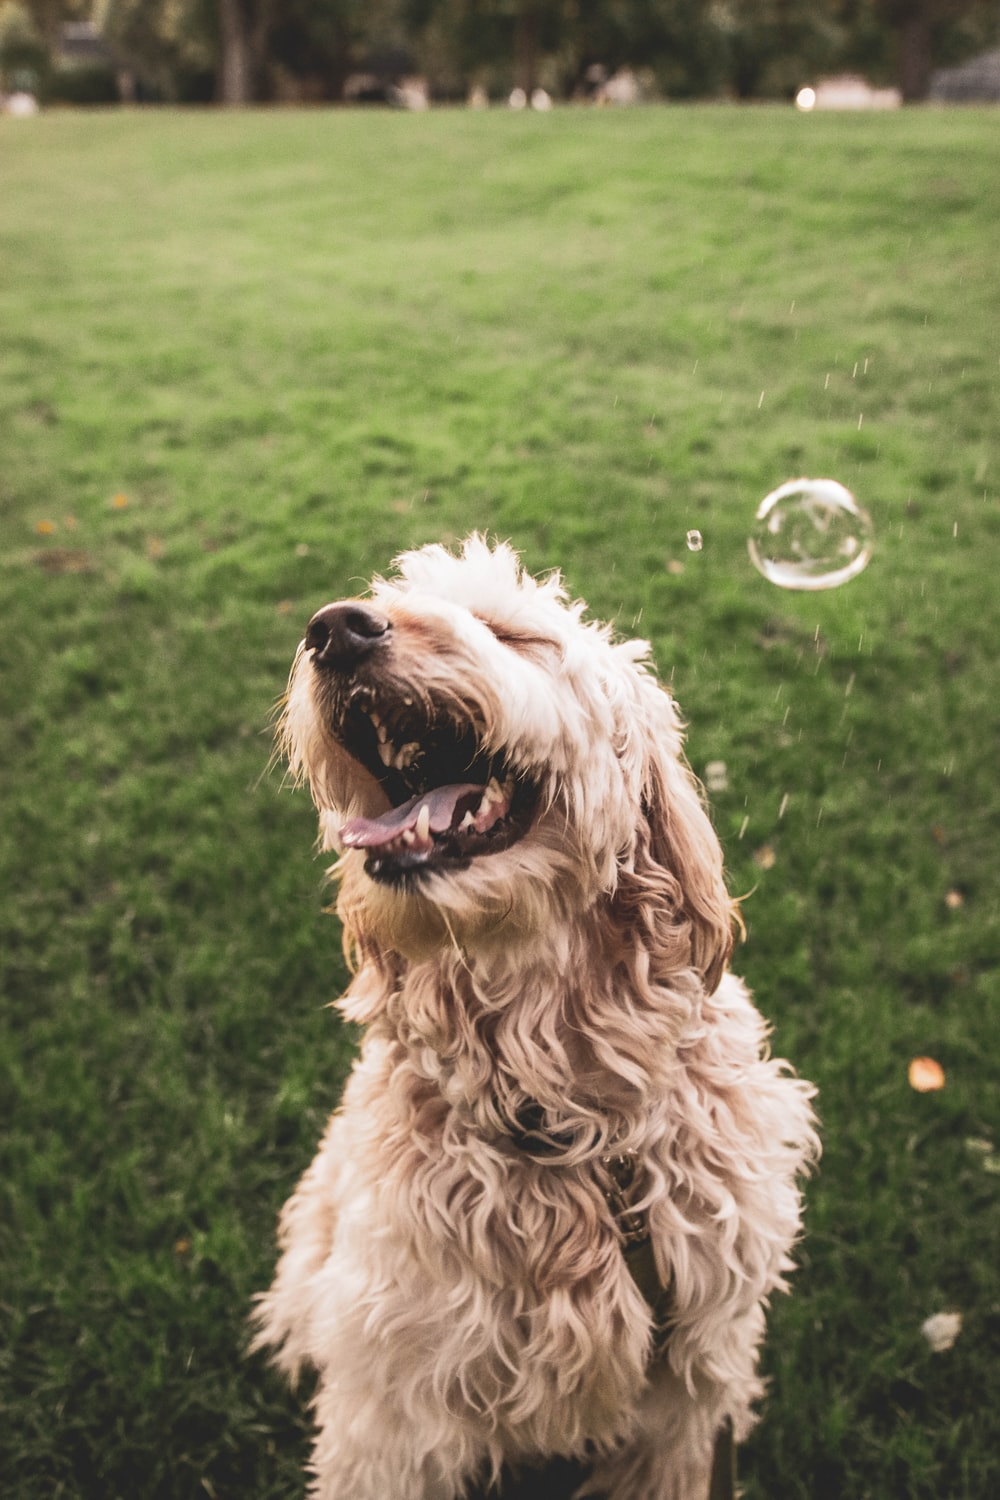 brown dog playing with bubbles